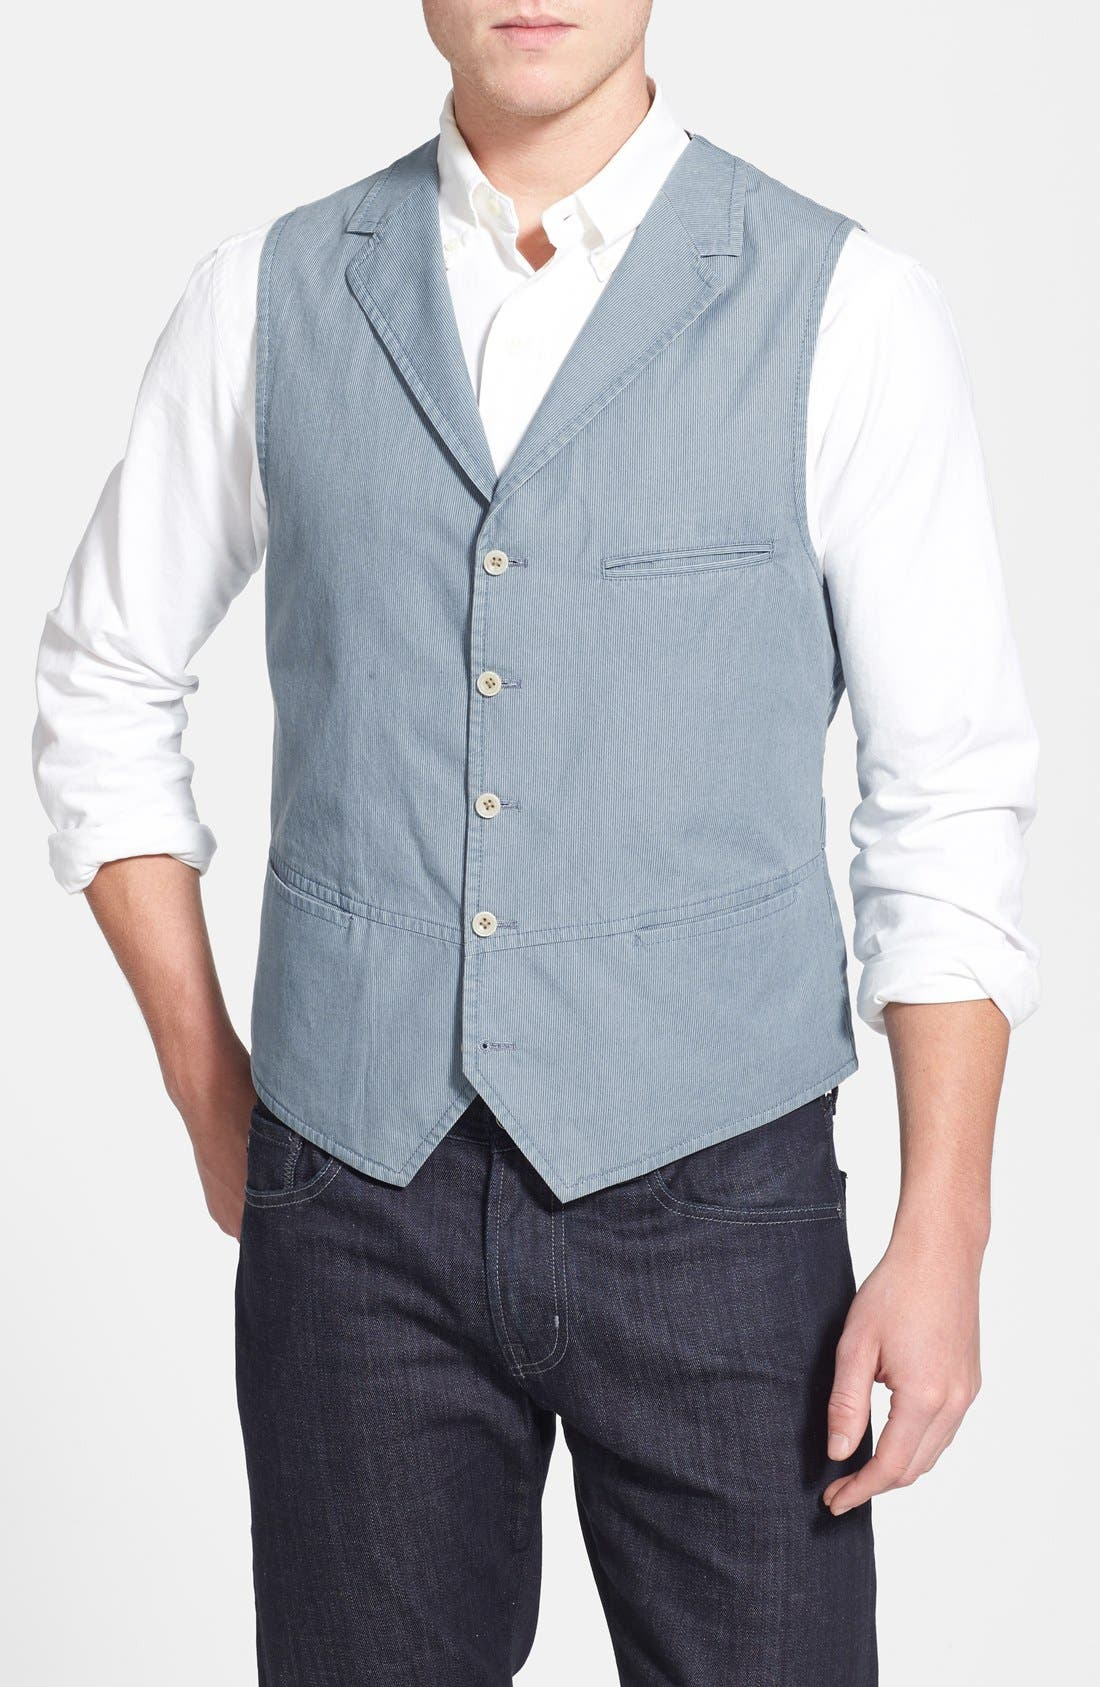 Alternate Image 1 Selected - Kroon 'Axel' Regular Fit Vest